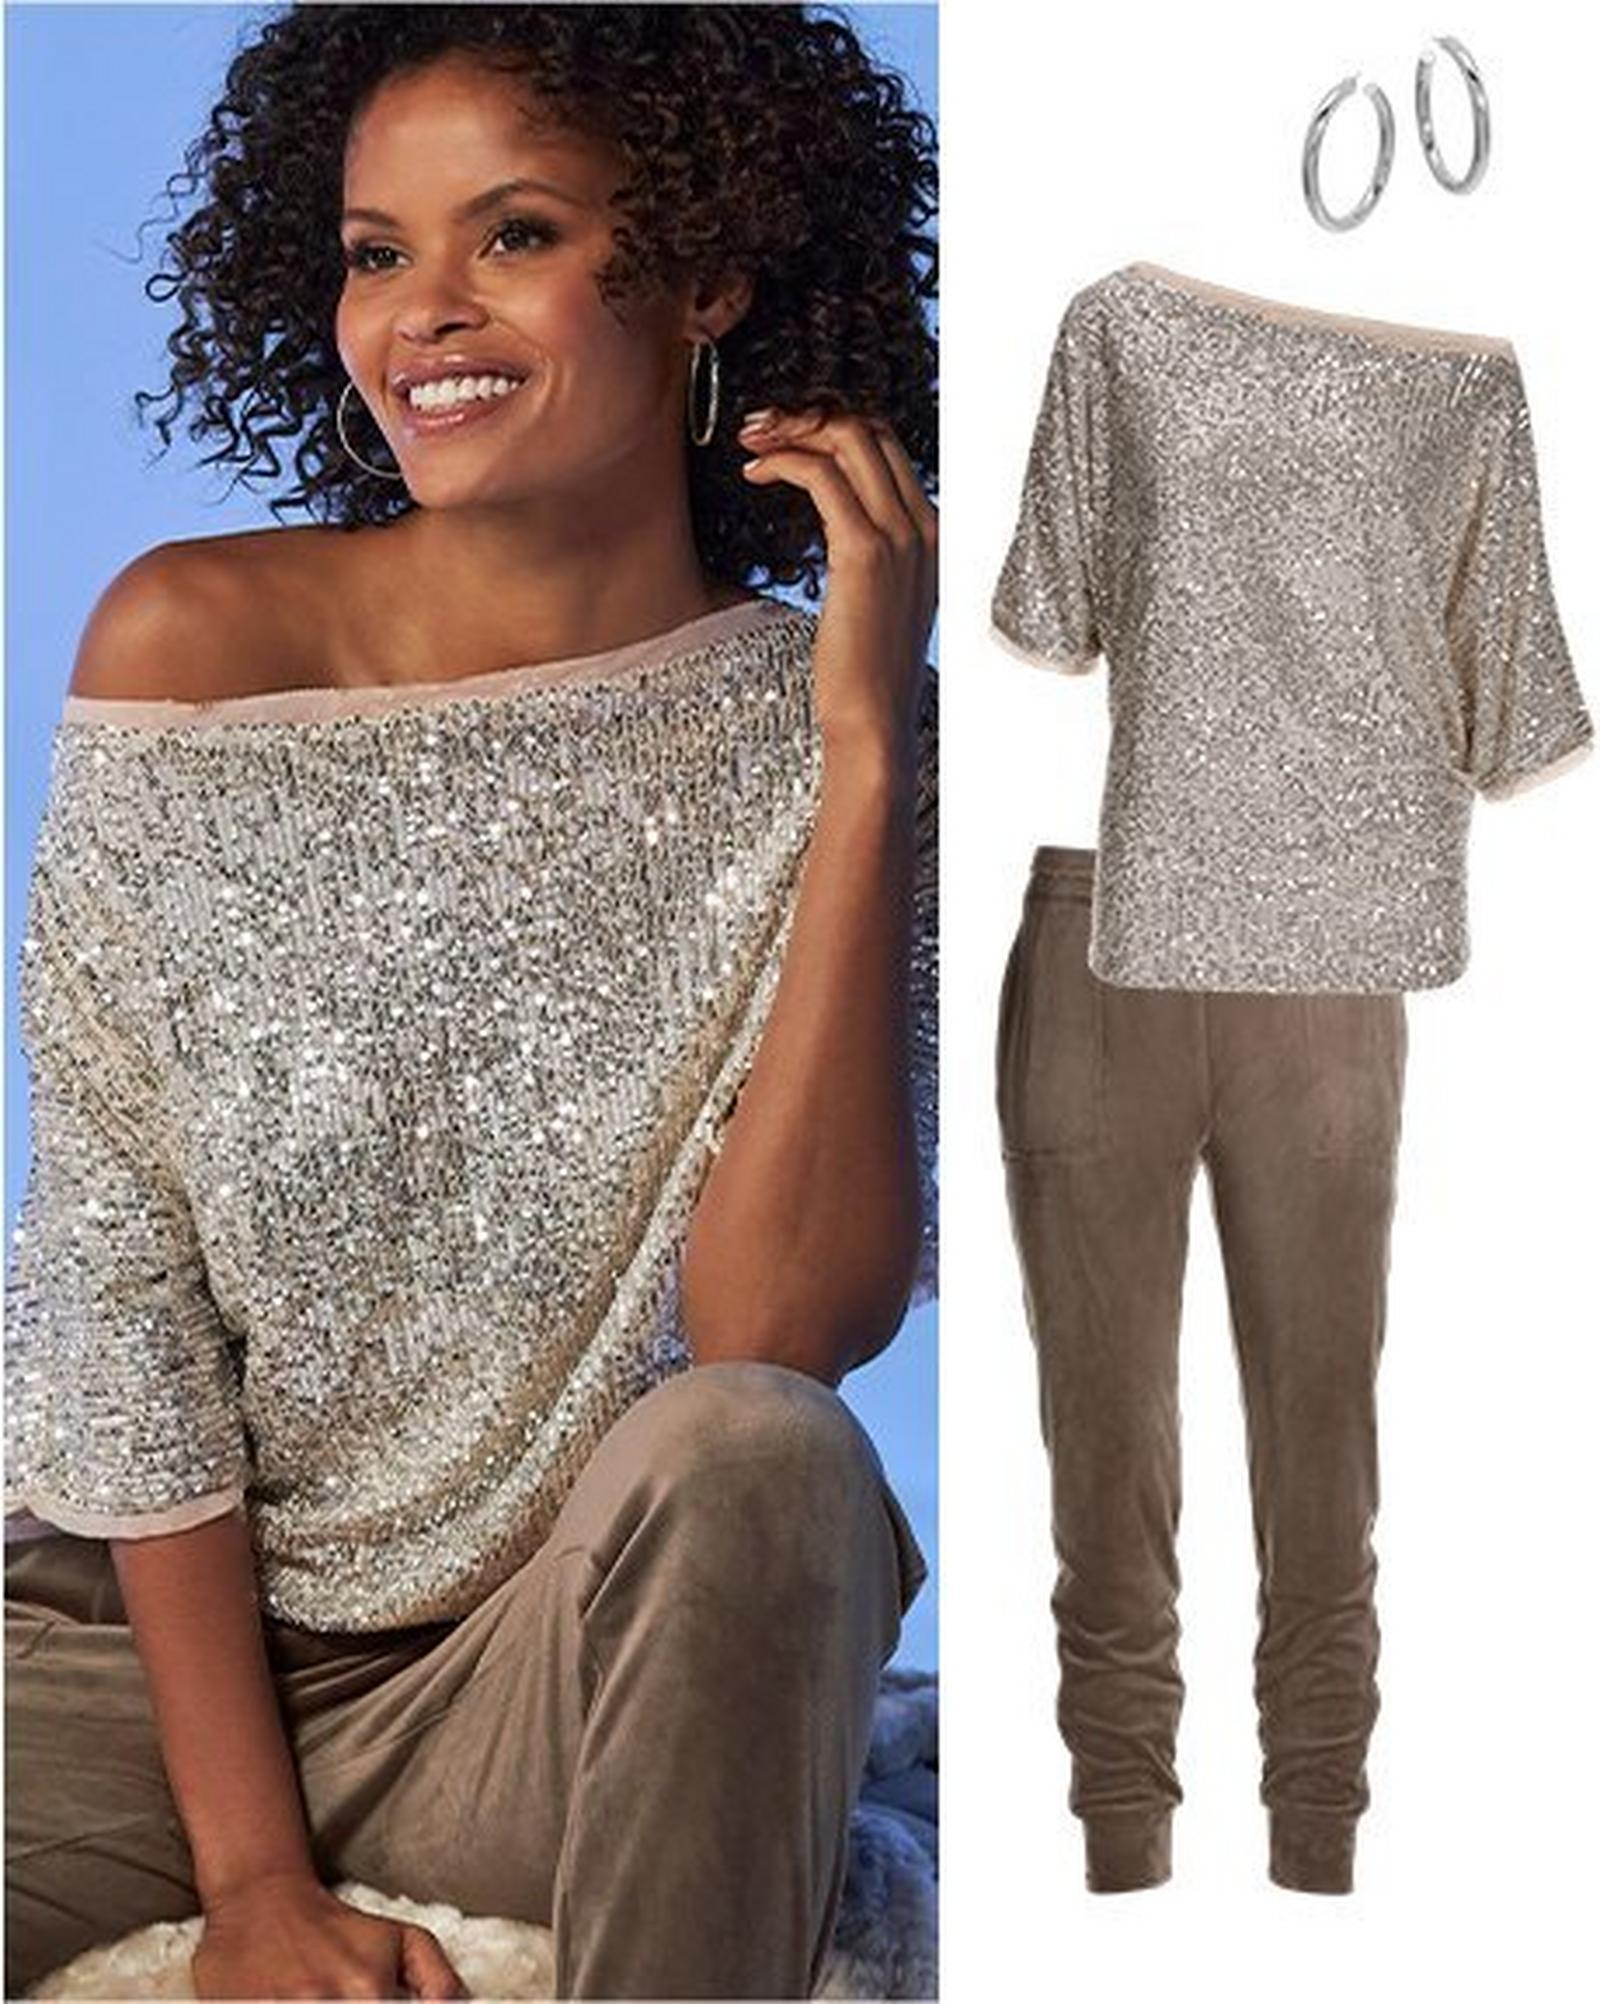 model wearing a sequin embellished slouchy top, taupe velour joggers, and silver hoop earrings. all items shown the right separately.